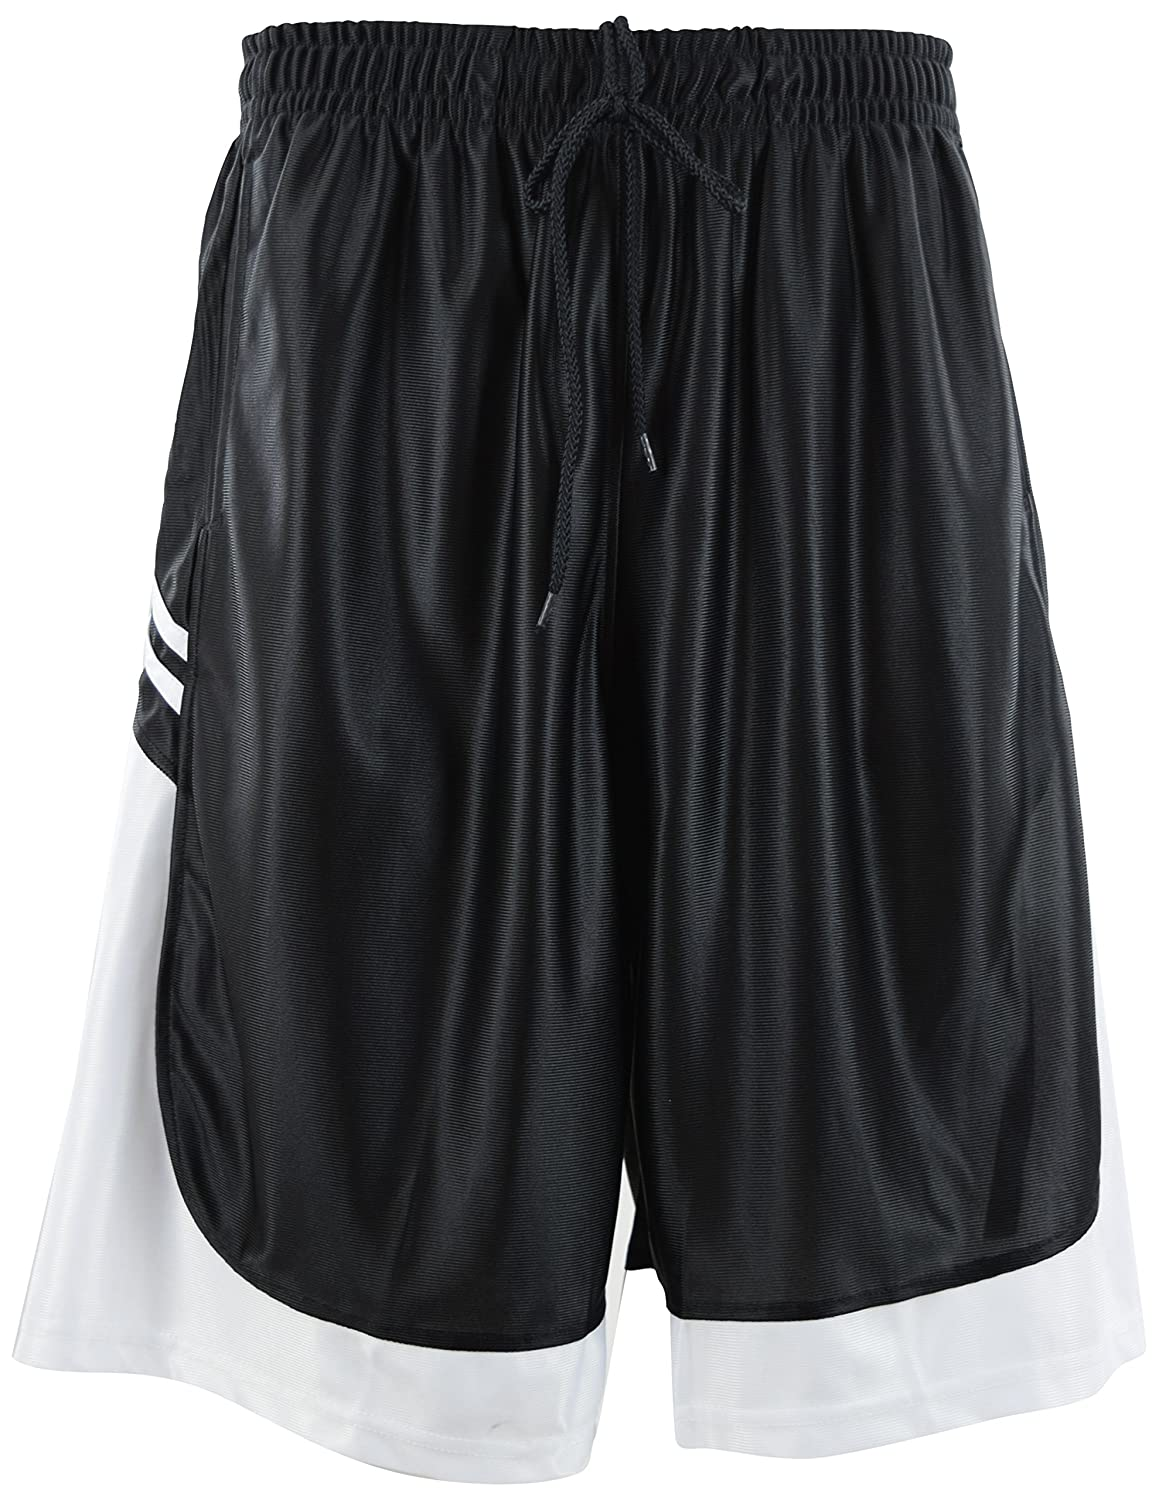 The JDP Co. SHORTS メンズ B07CLJYPK1 Small|1601-black 1601-black Small